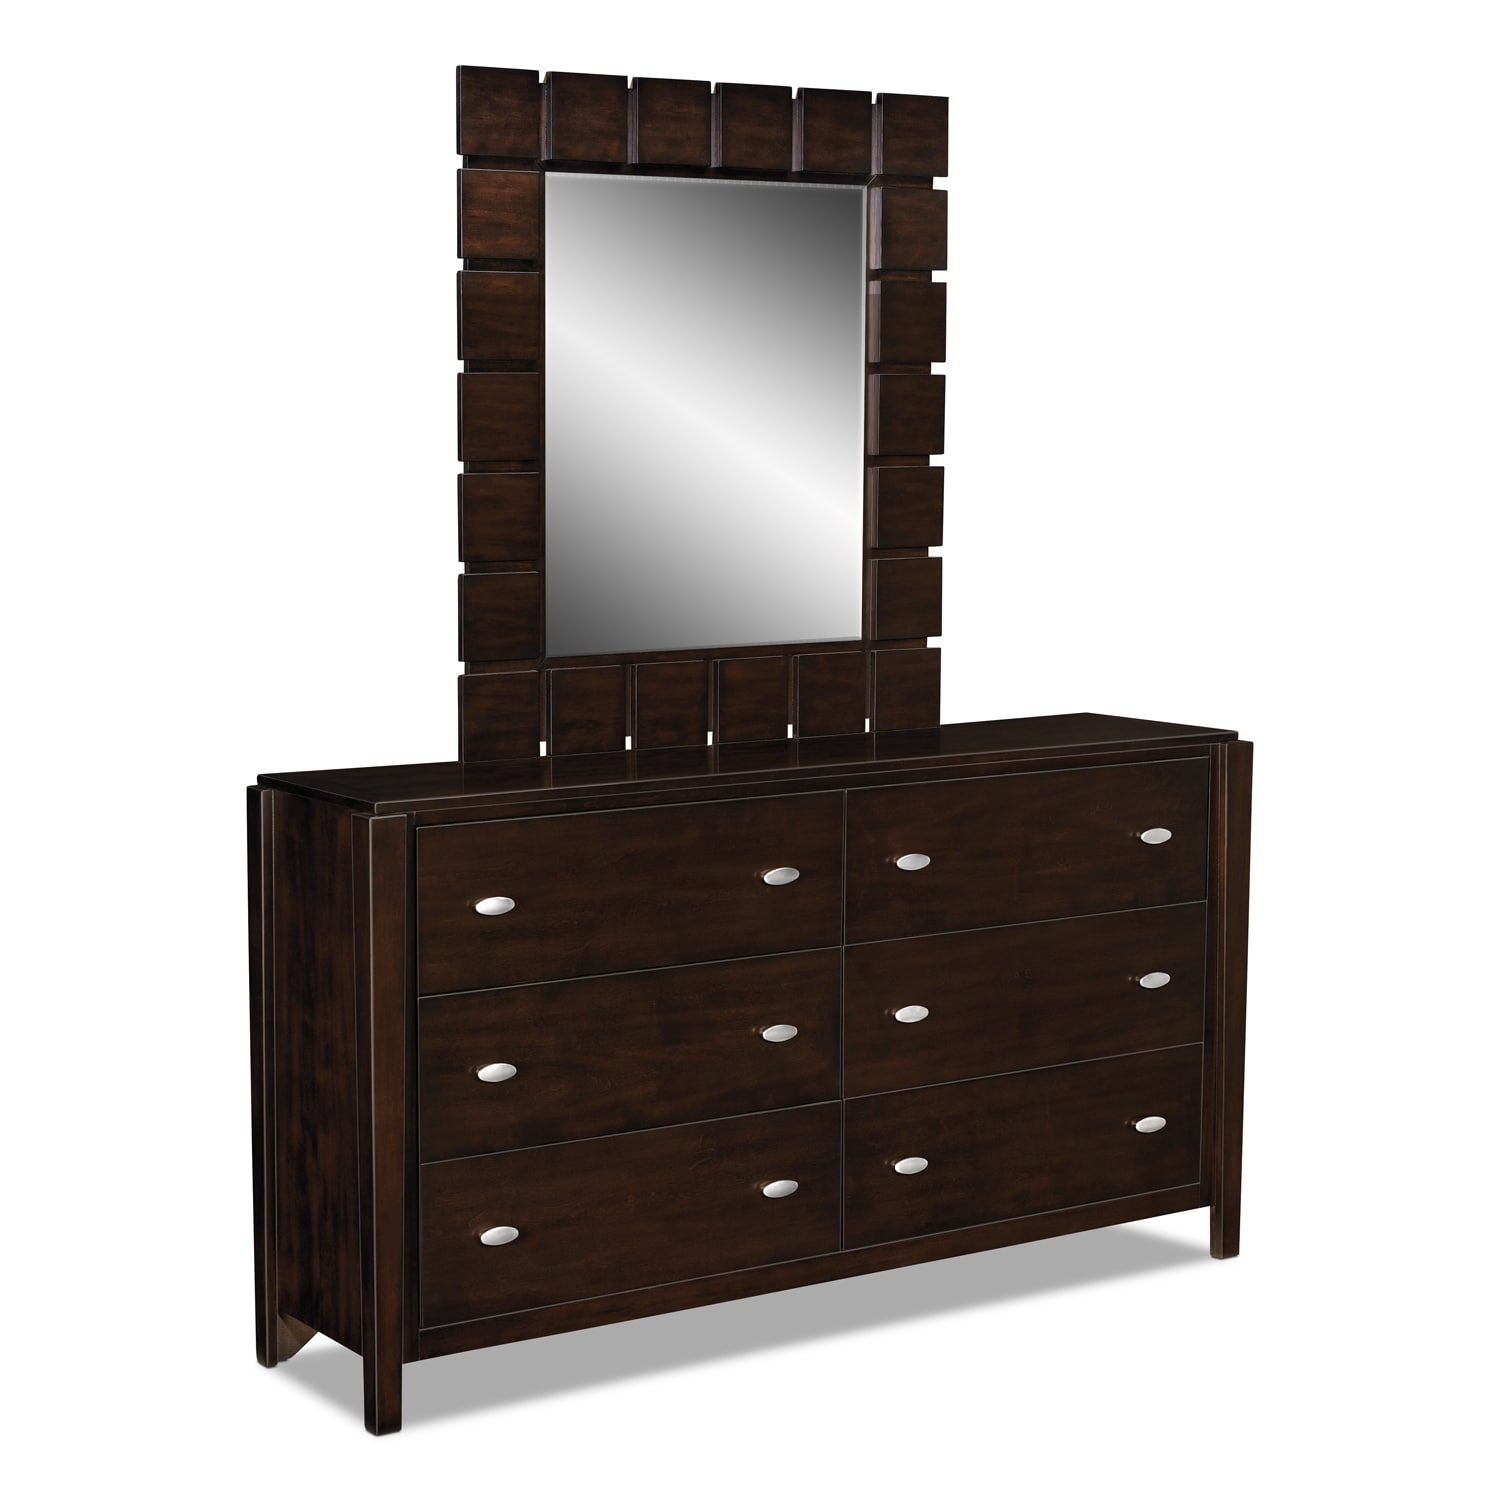 Mosaic Dresser and Mirror - Dark Brown